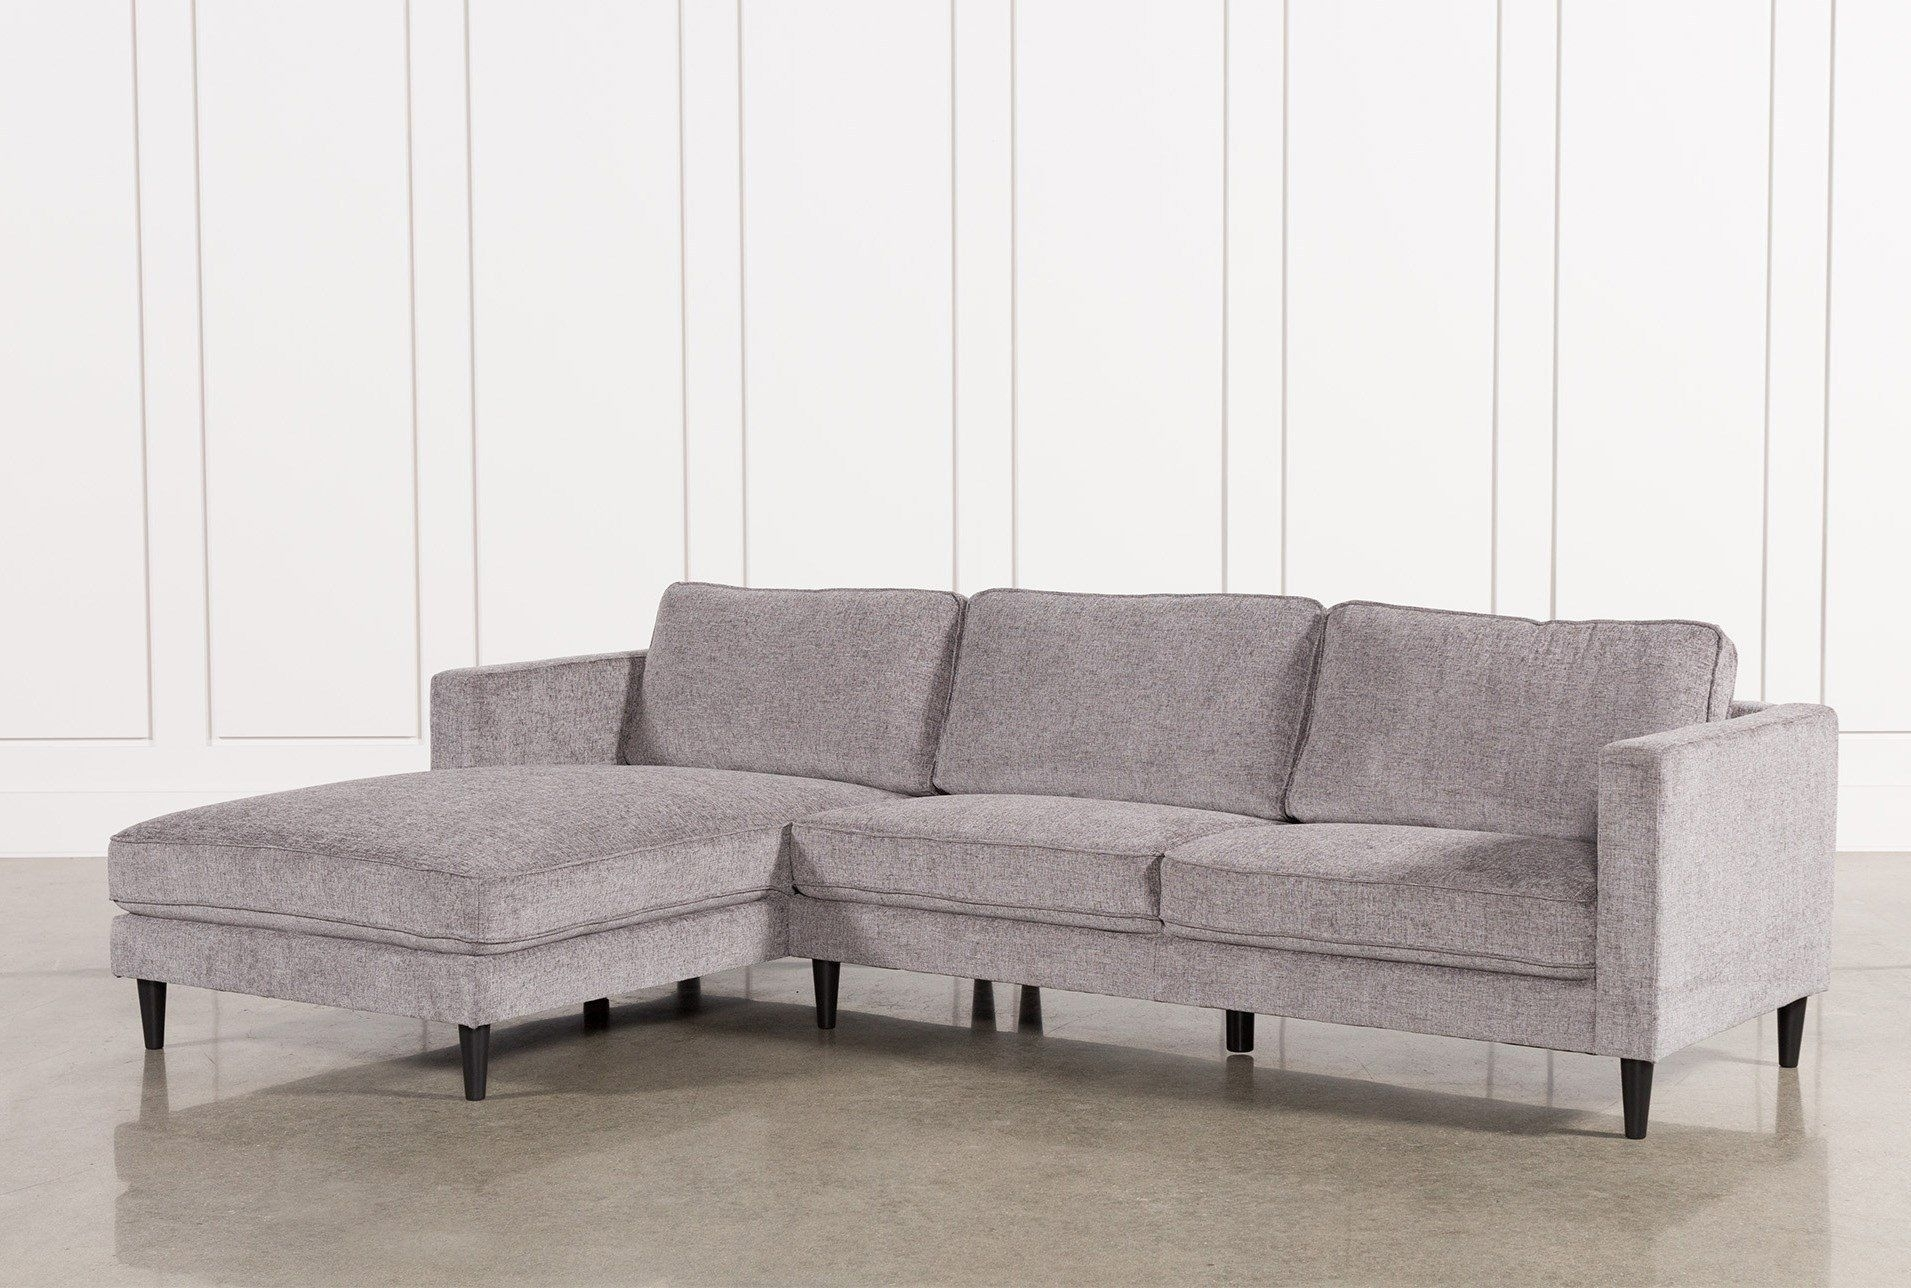 Cosmos Grey 2 Piece Sectional W/laf Chaise | Couches | Pinterest Regarding Avery 2 Piece Sectionals With Laf Armless Chaise (View 7 of 25)